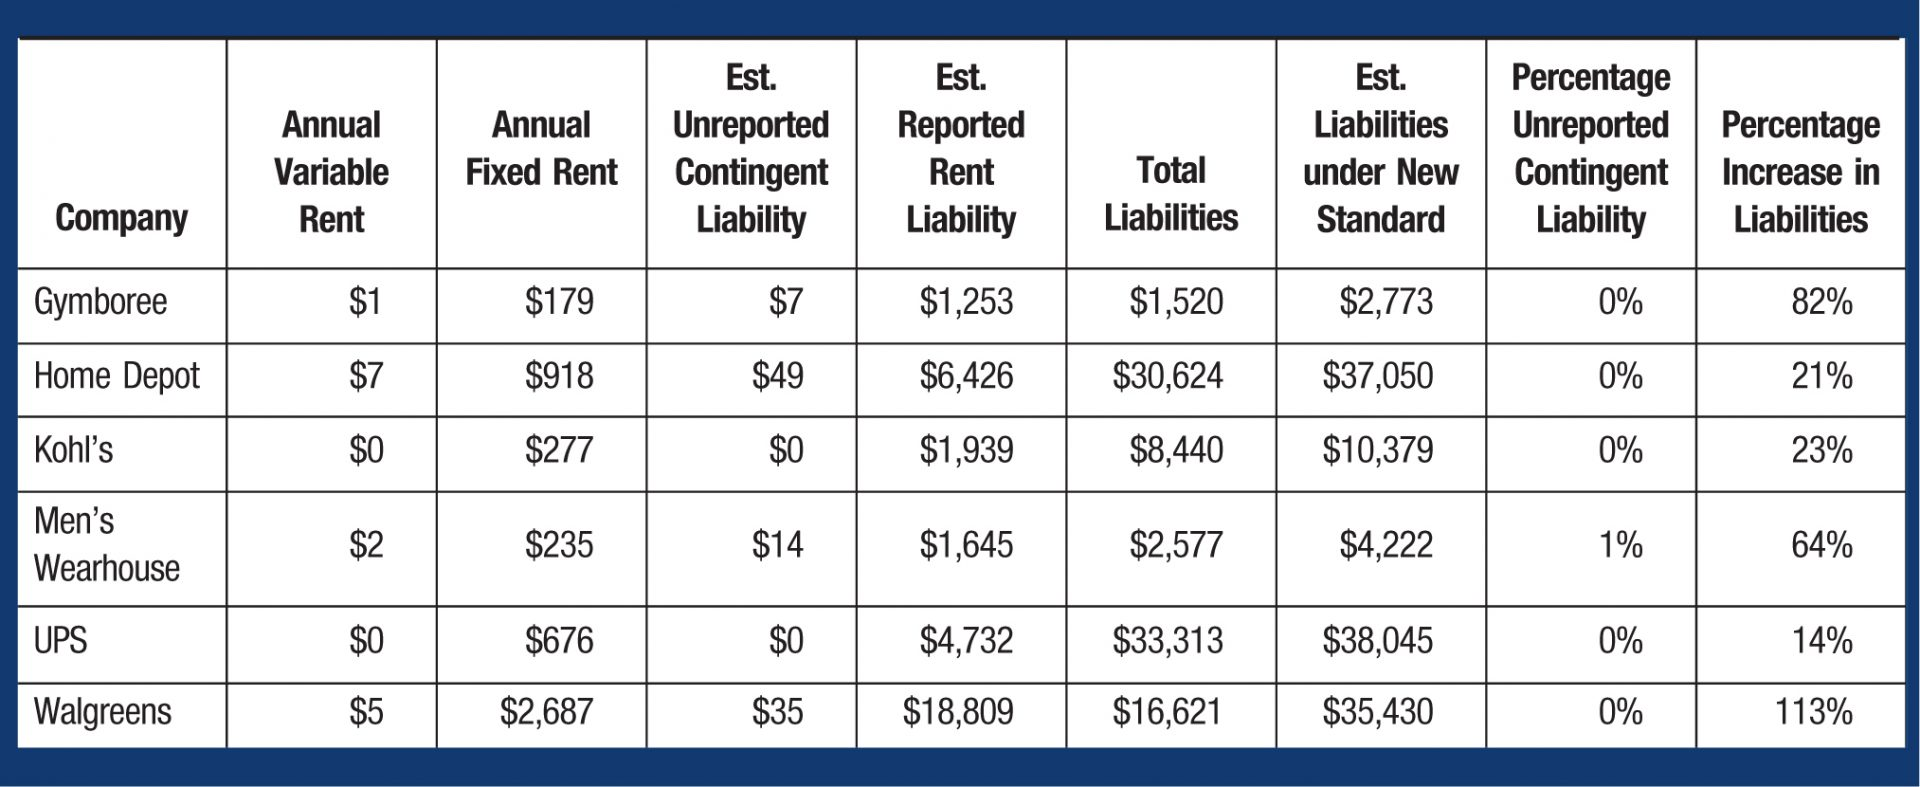 Company; Annual Variable Rent; Annual Fixed Rent; Est. Unreported Contingent Liability; Est. Reported Rent Liability; Total Liabilities; Est. Liabilities under New Standard; Percentage Unreported Contingent Liability; Percentage Increase in Liabilities Gymboree; ; 9; ; ,253; ,520; ,773; 0%; 82% Home Depot; ; 8; ; ,426; ,624; ,050; 0%; 21% Kohl